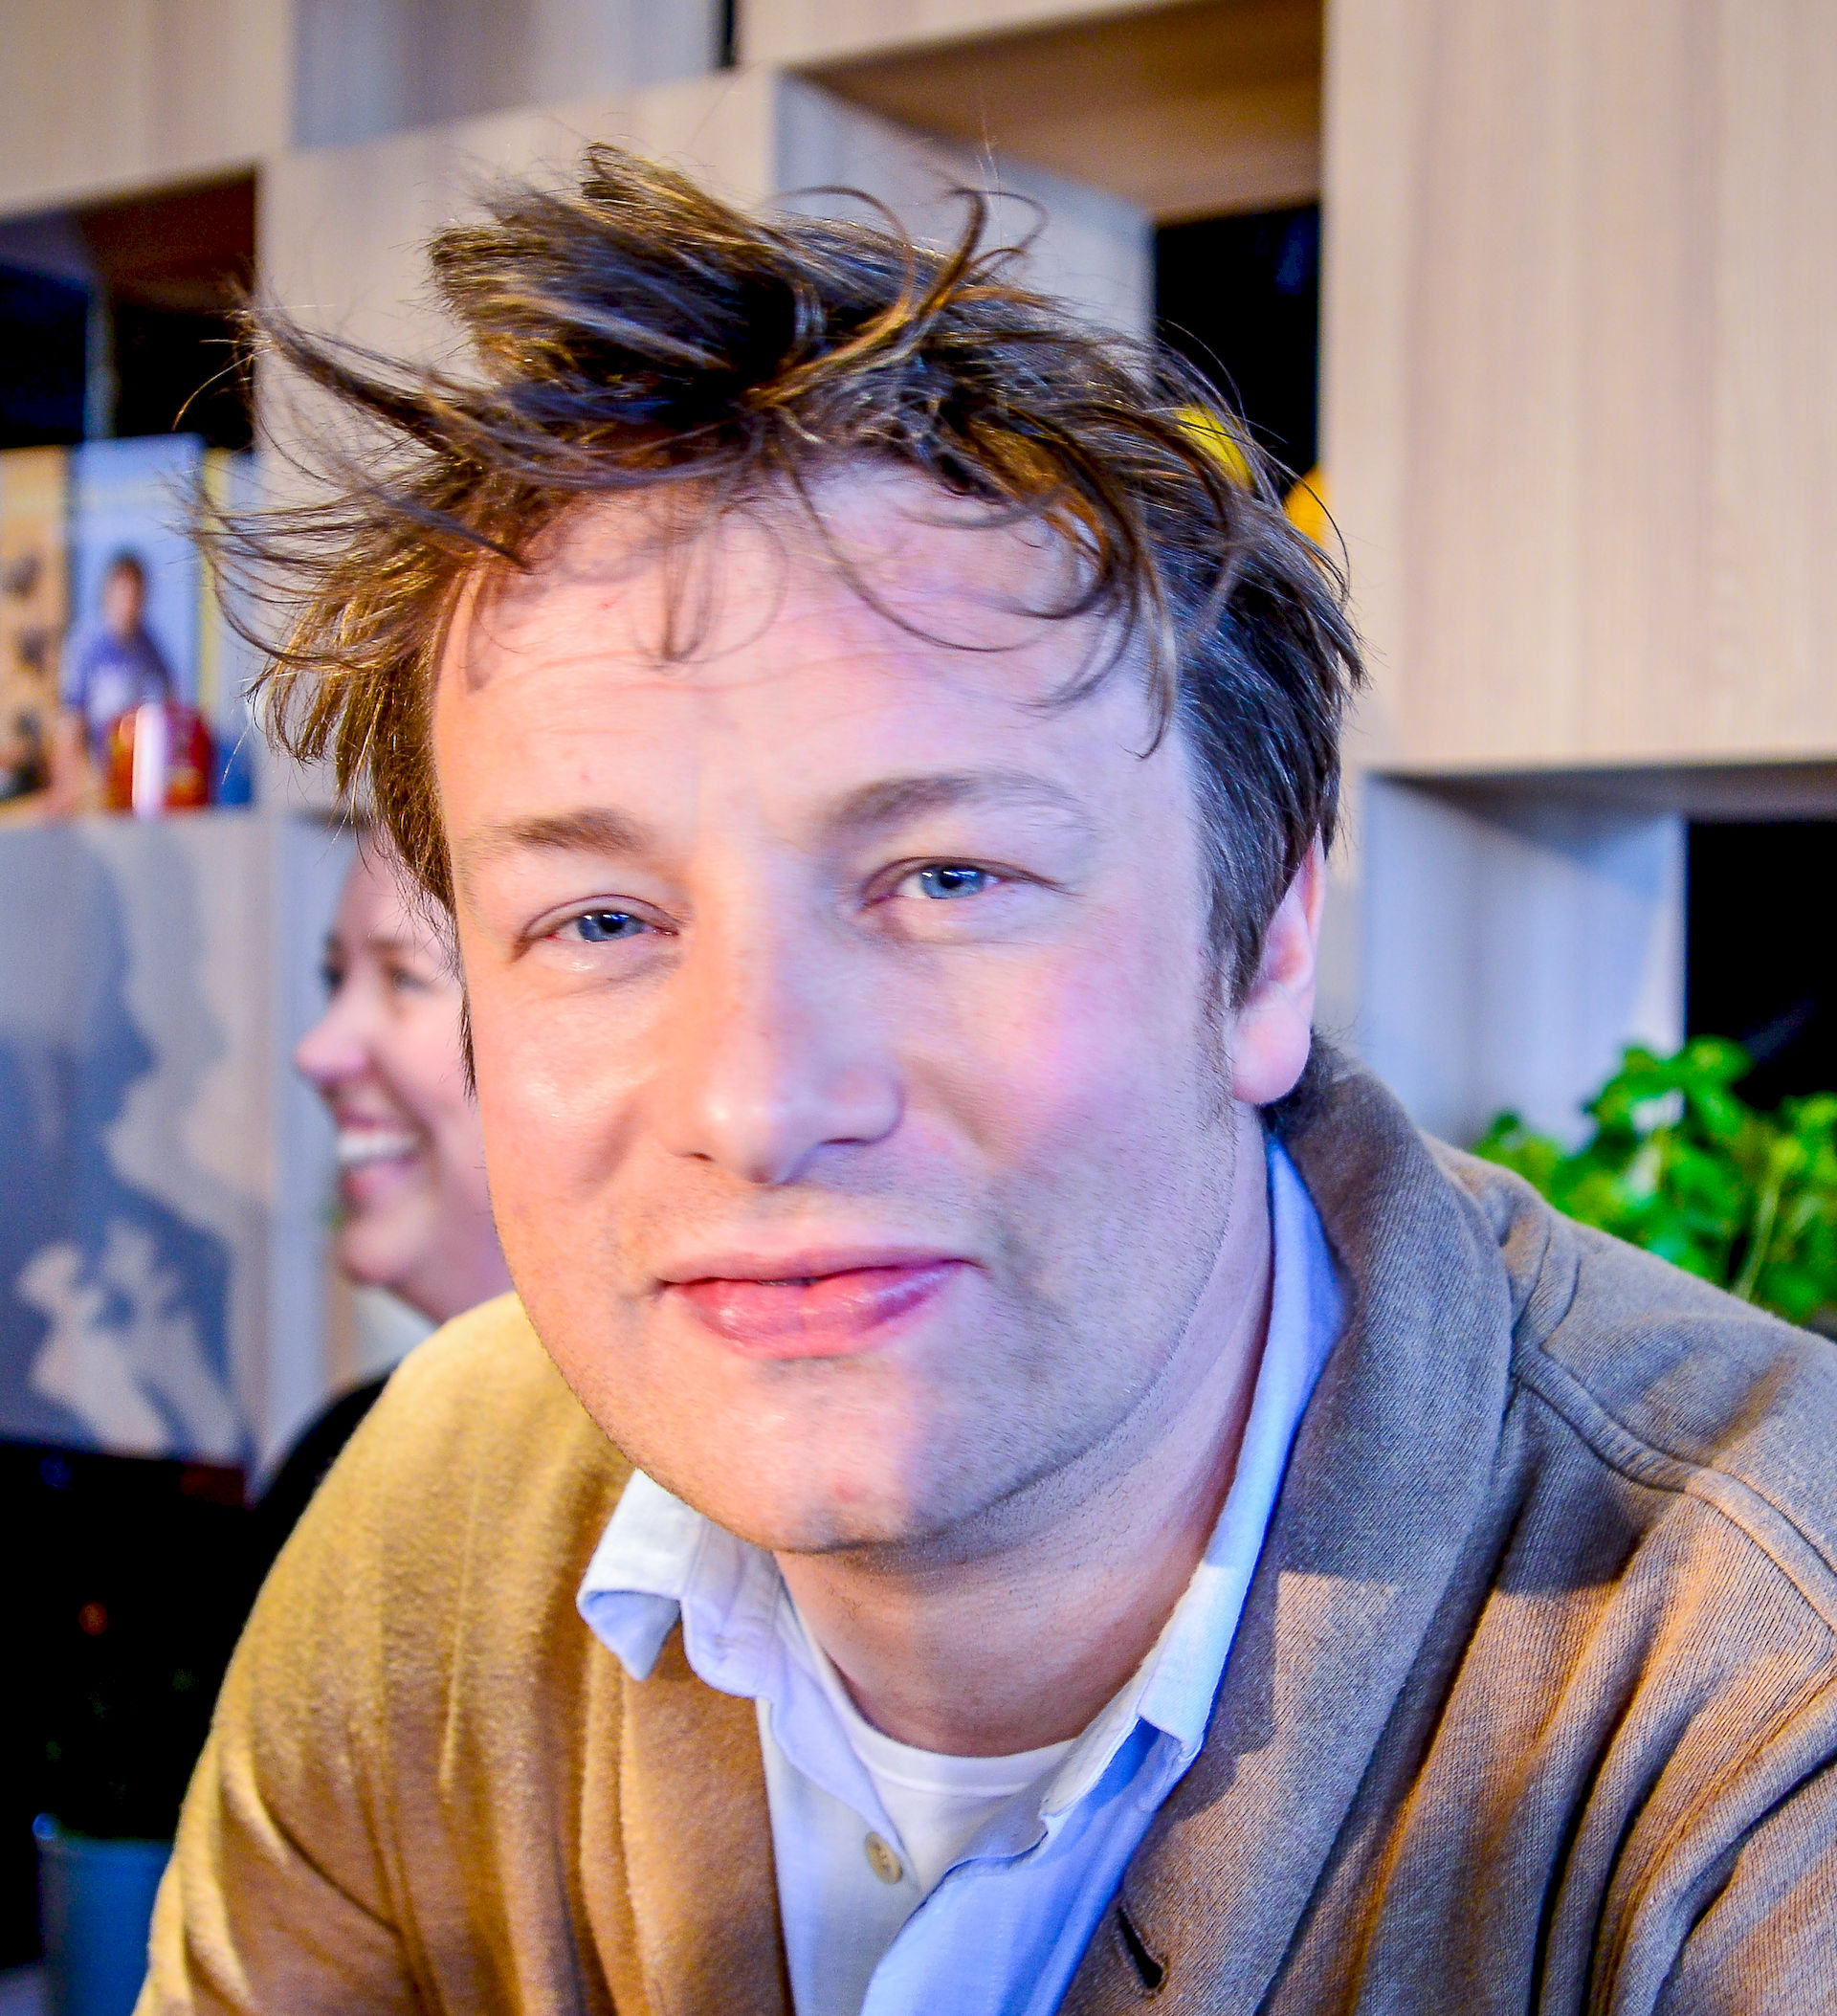 Photo of Jamie Oliver: British chef and media personality